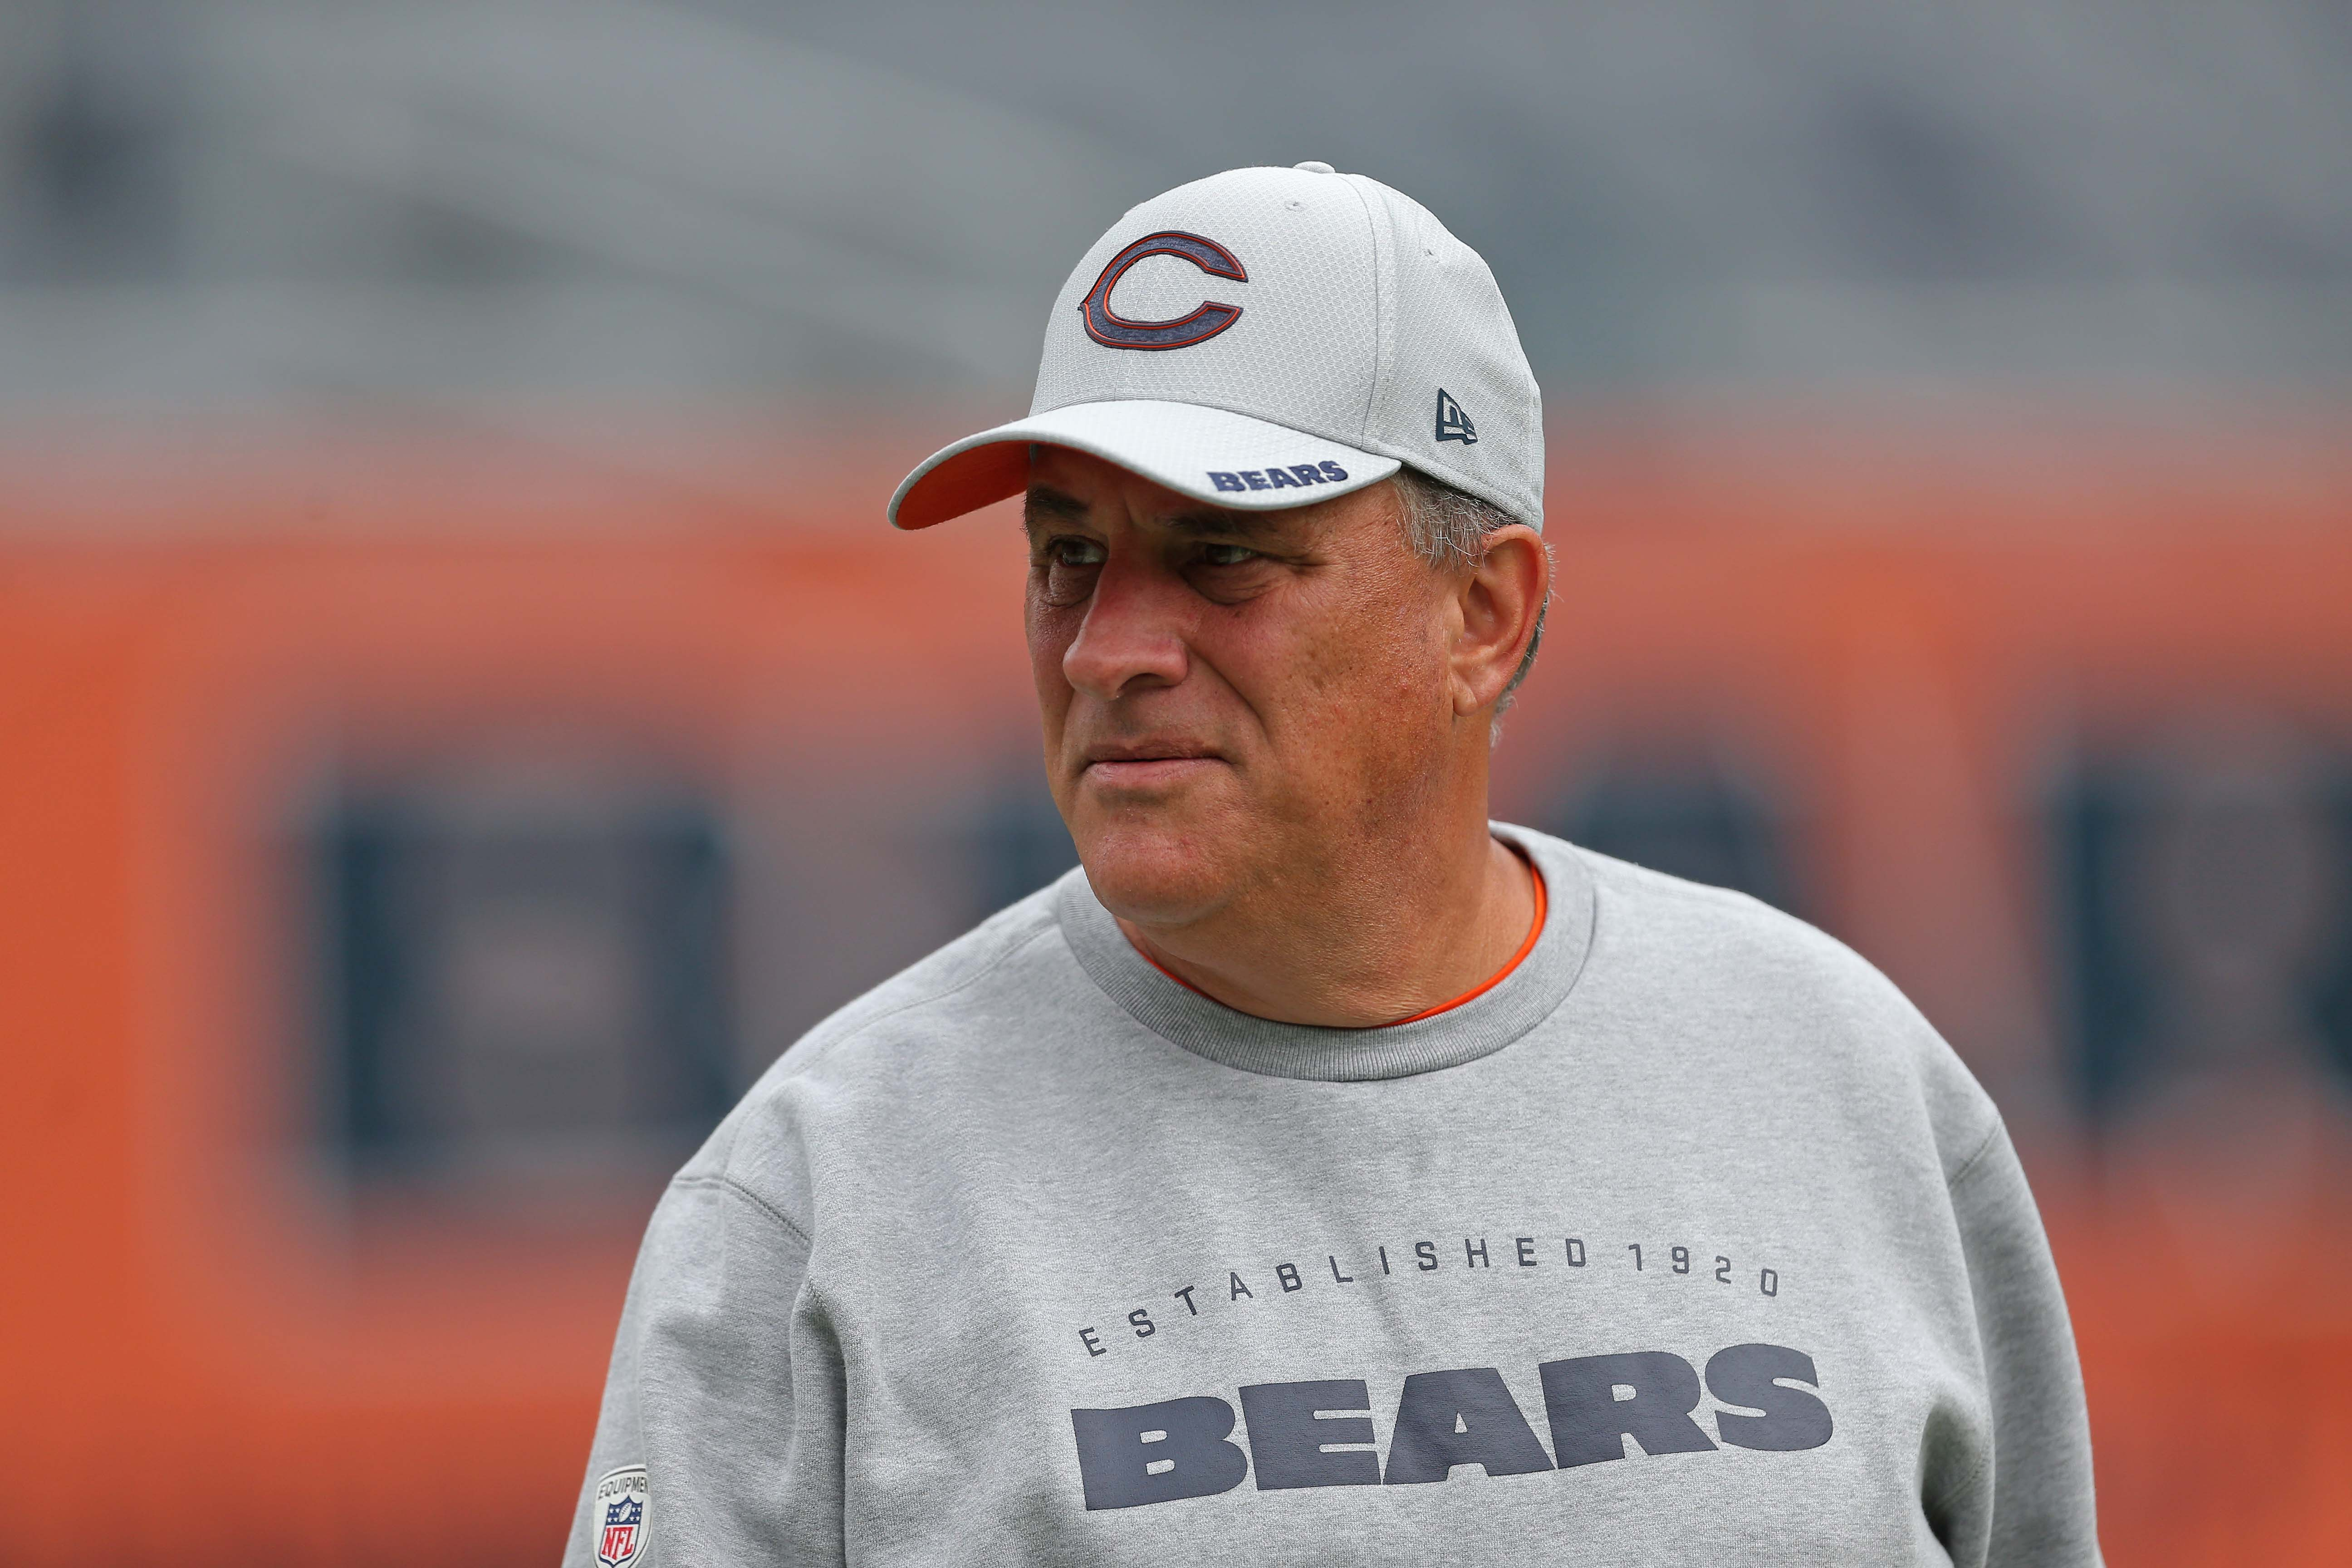 The Broncos buck NFL trends, hire Bears defensive coordinator Vic Fangio as head coach